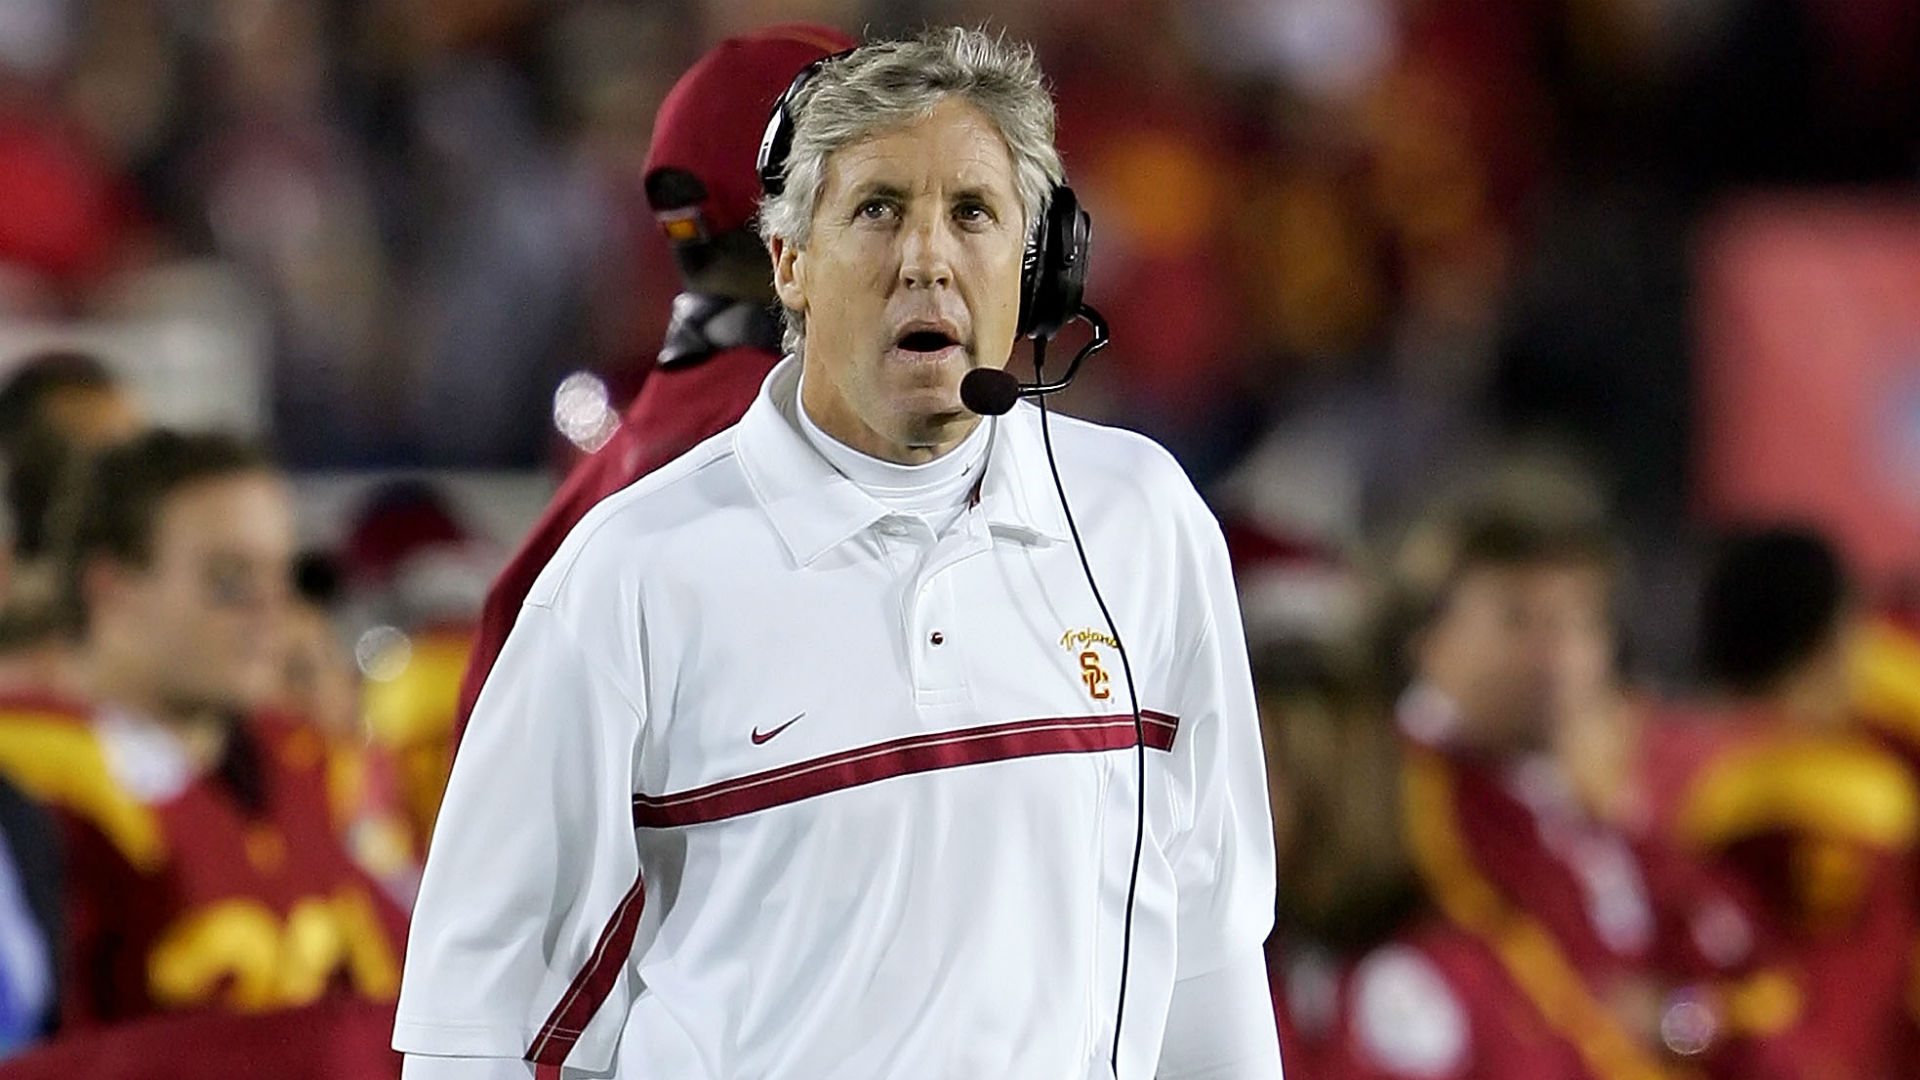 Replay Of 2006 Rose Bowl Gives Twitter Opportunity To Dog Pete Carroll Again Sporting News